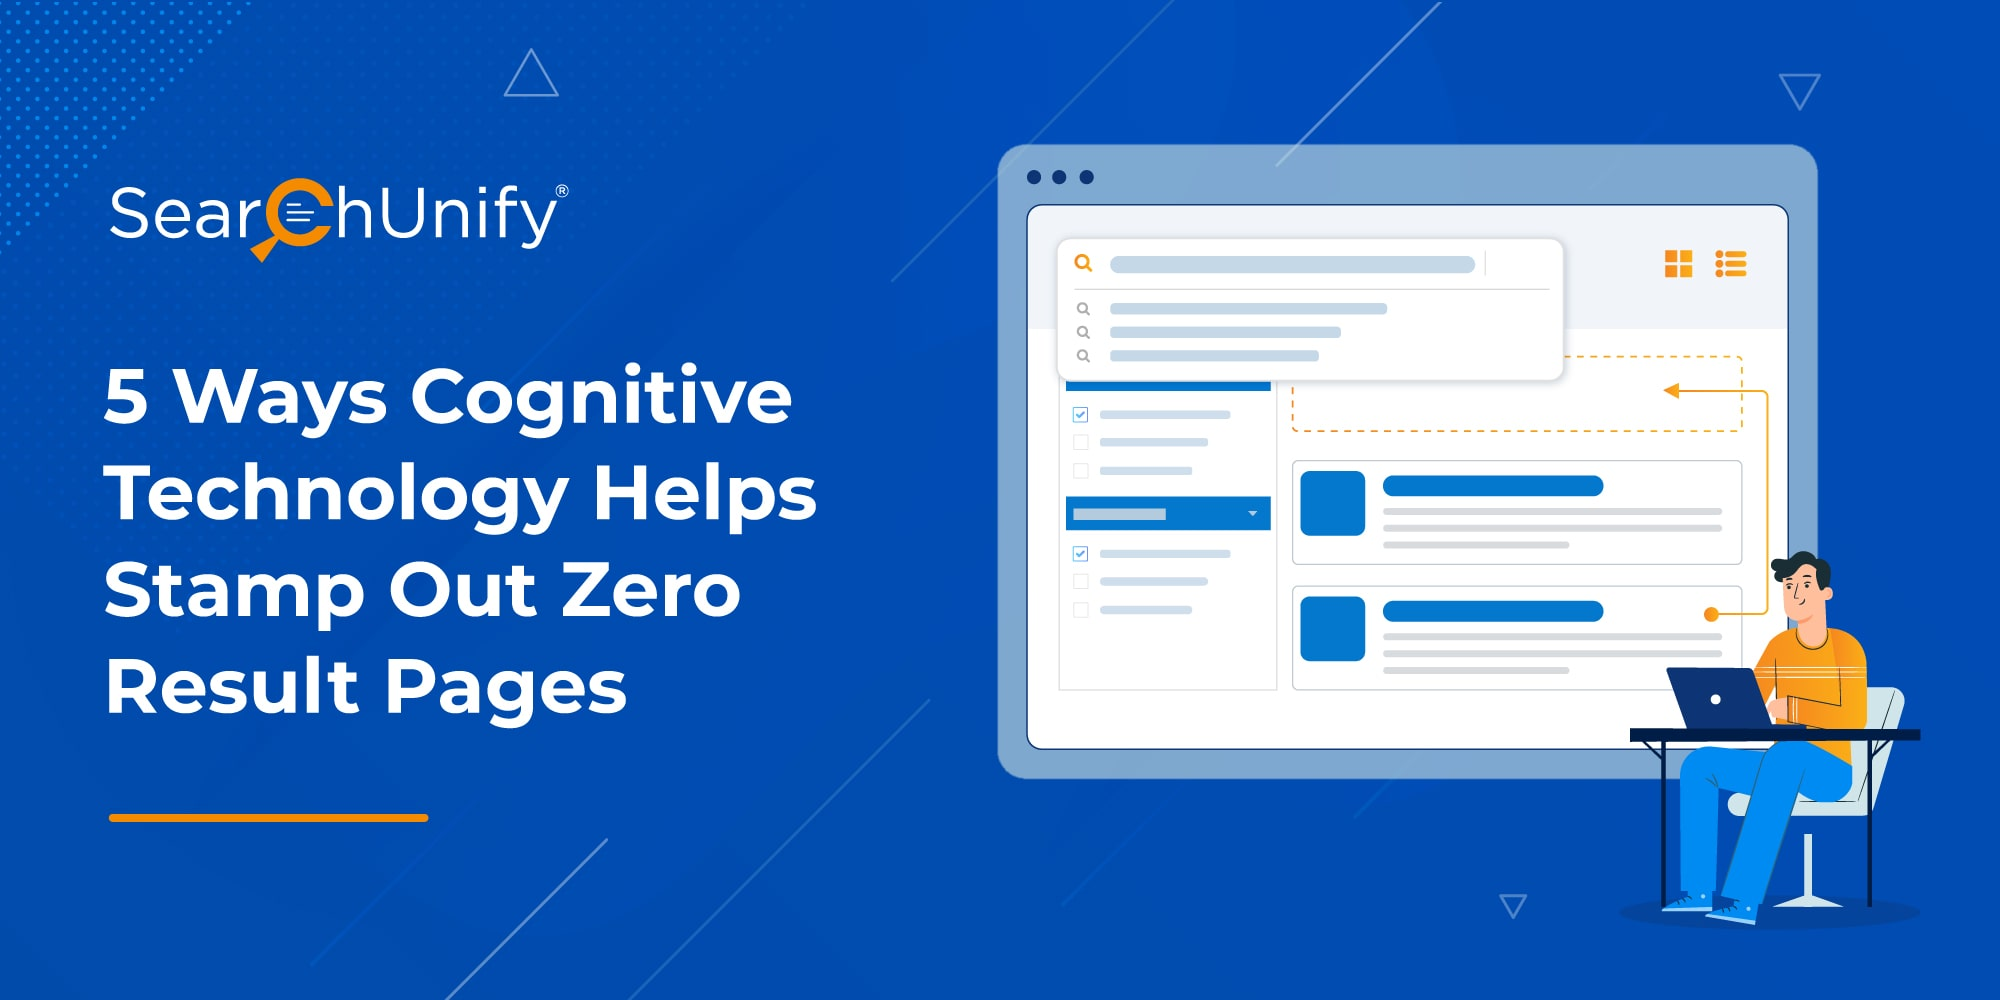 5 Ways Cognitive Technology Helps Stamp Out Zero Result Pages